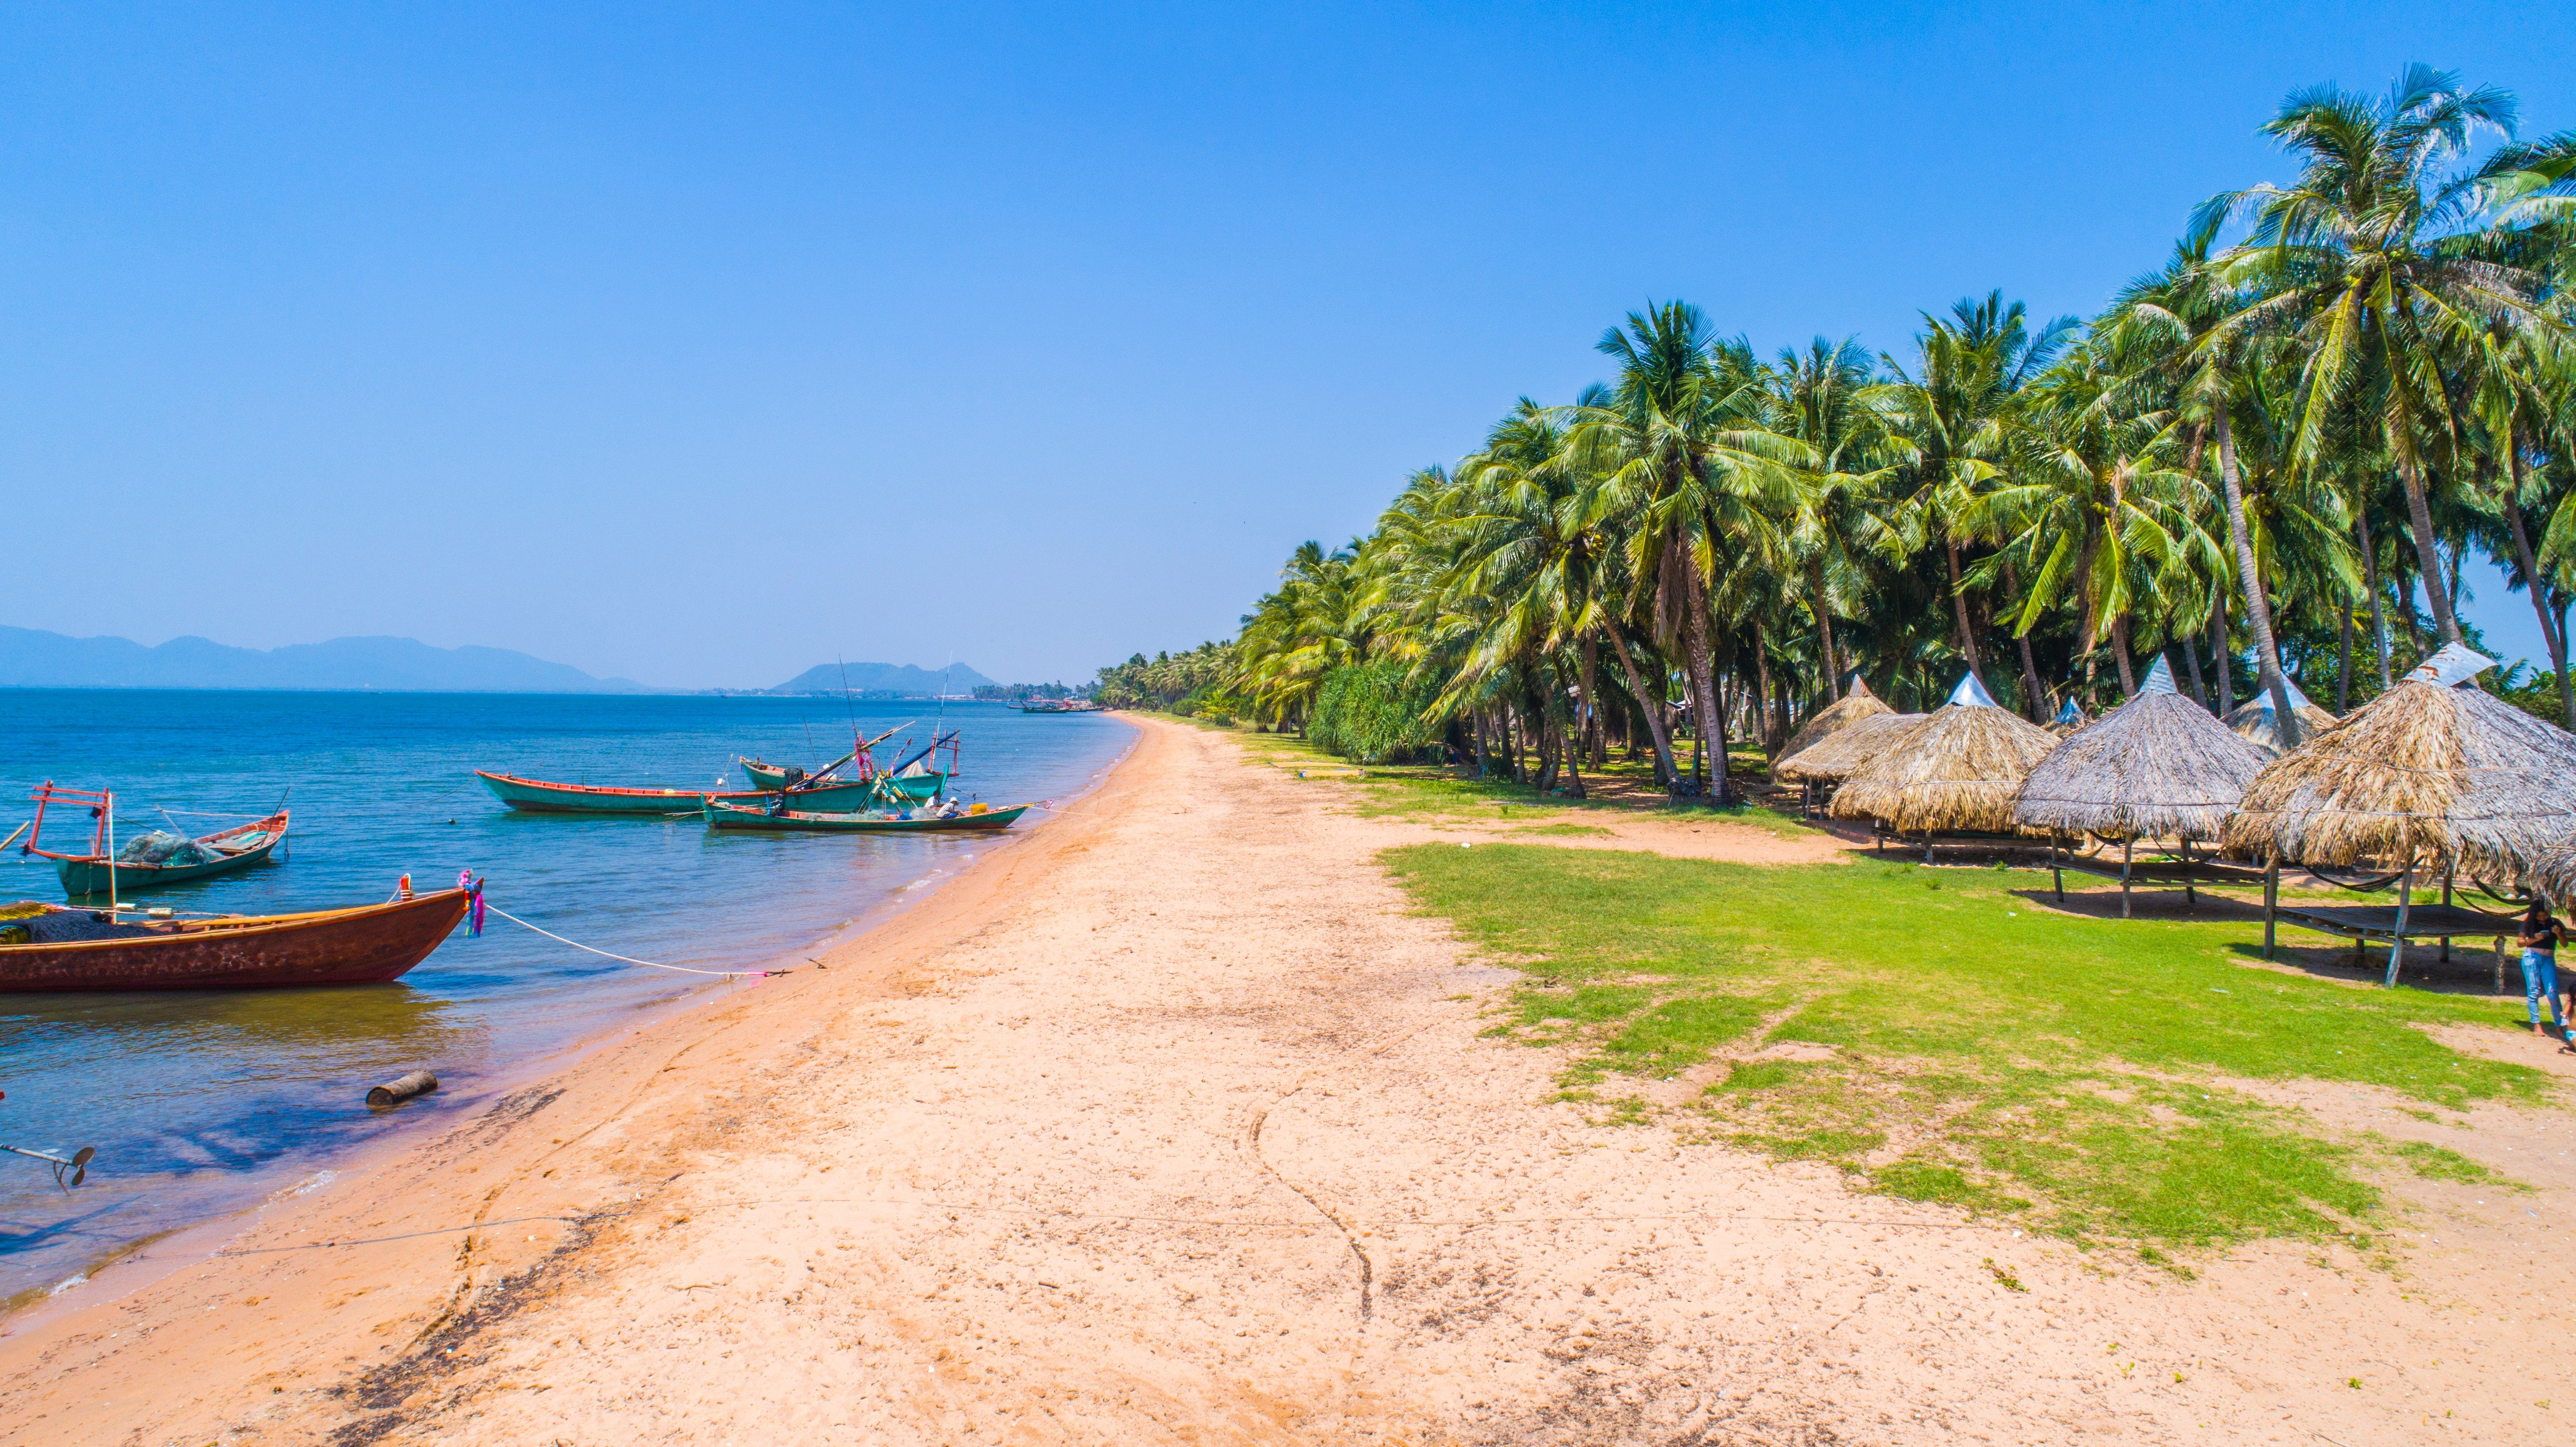 Angkol Beach at Kampot province, Kingdom of Cambodia